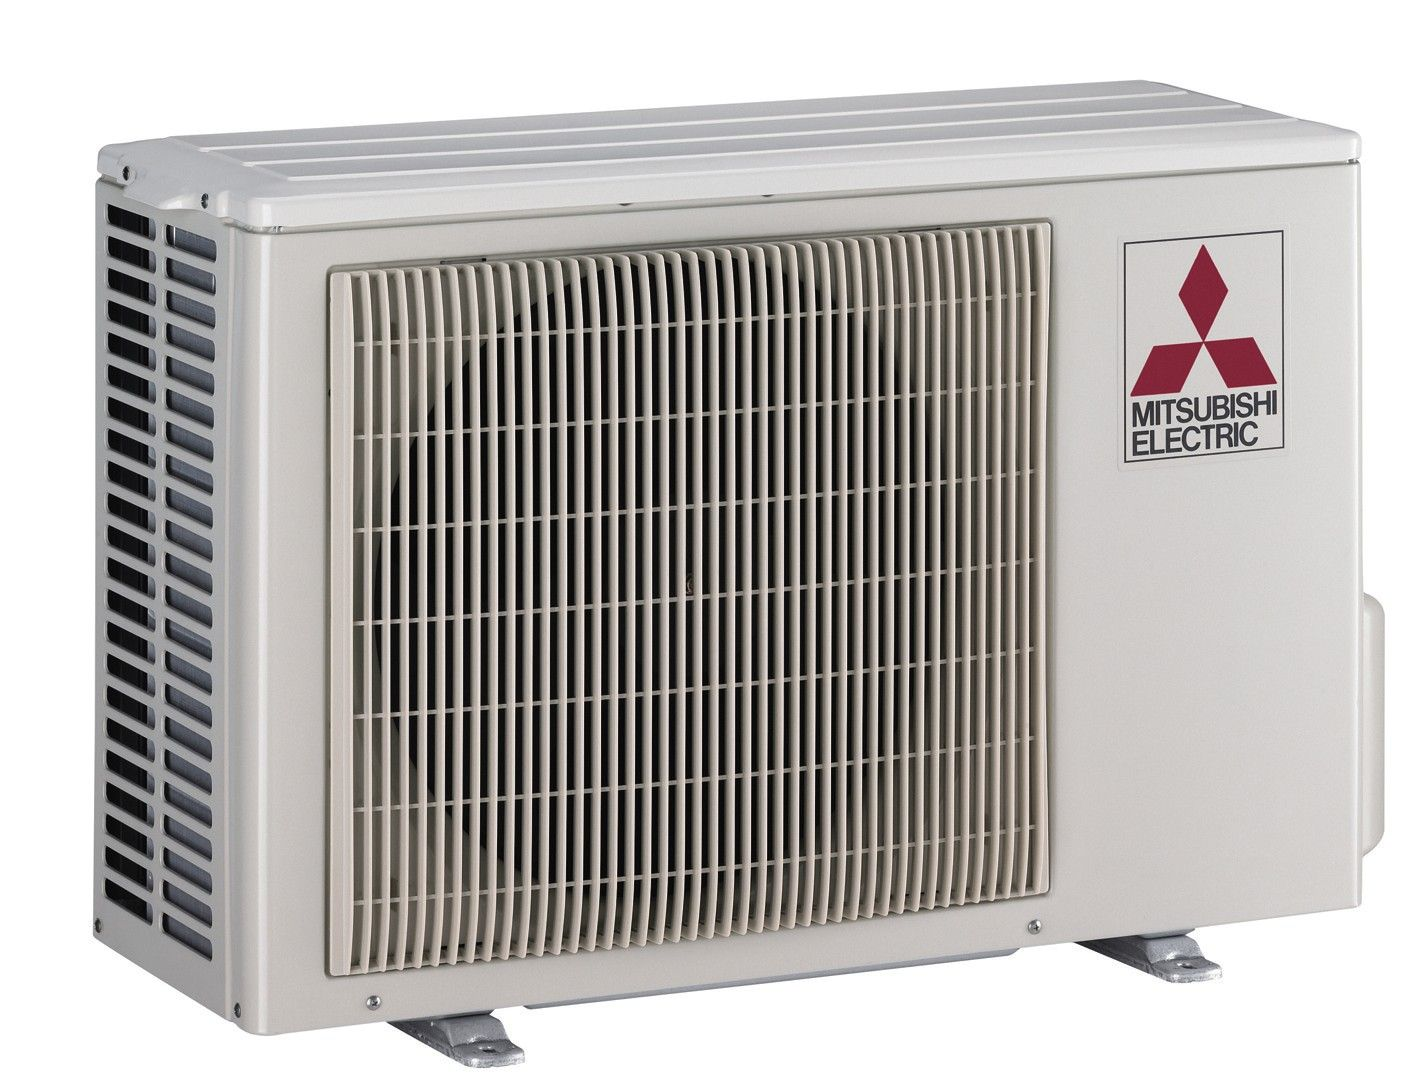 12K BTU 23.1 SEER Mitsubishi MUYGL Air Conditioner Outdoor